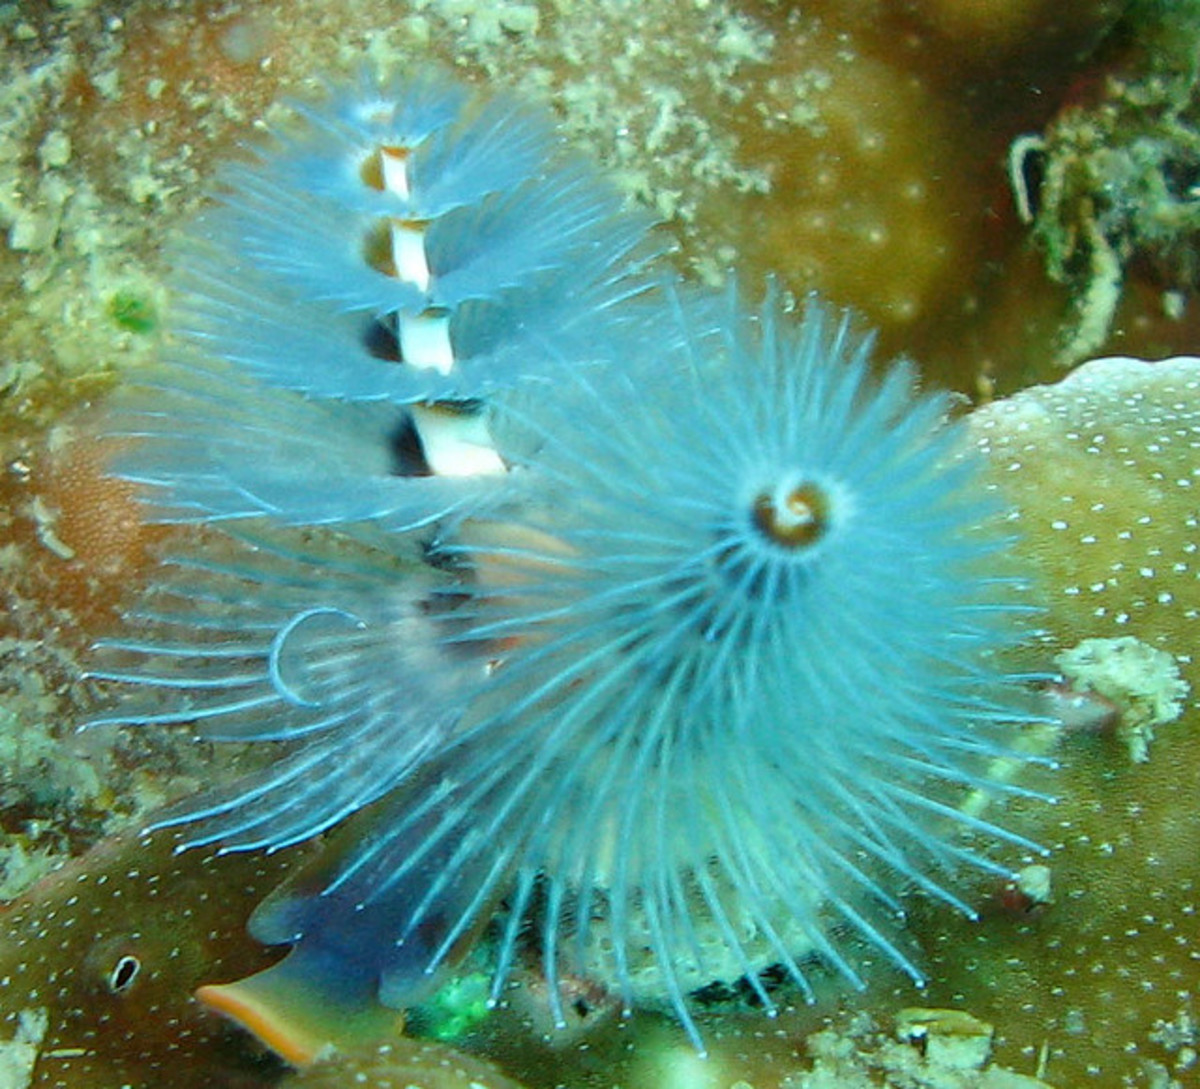 Christmas Tree Worms can be found in shades of red, orange, yellow, blue, brown and white.